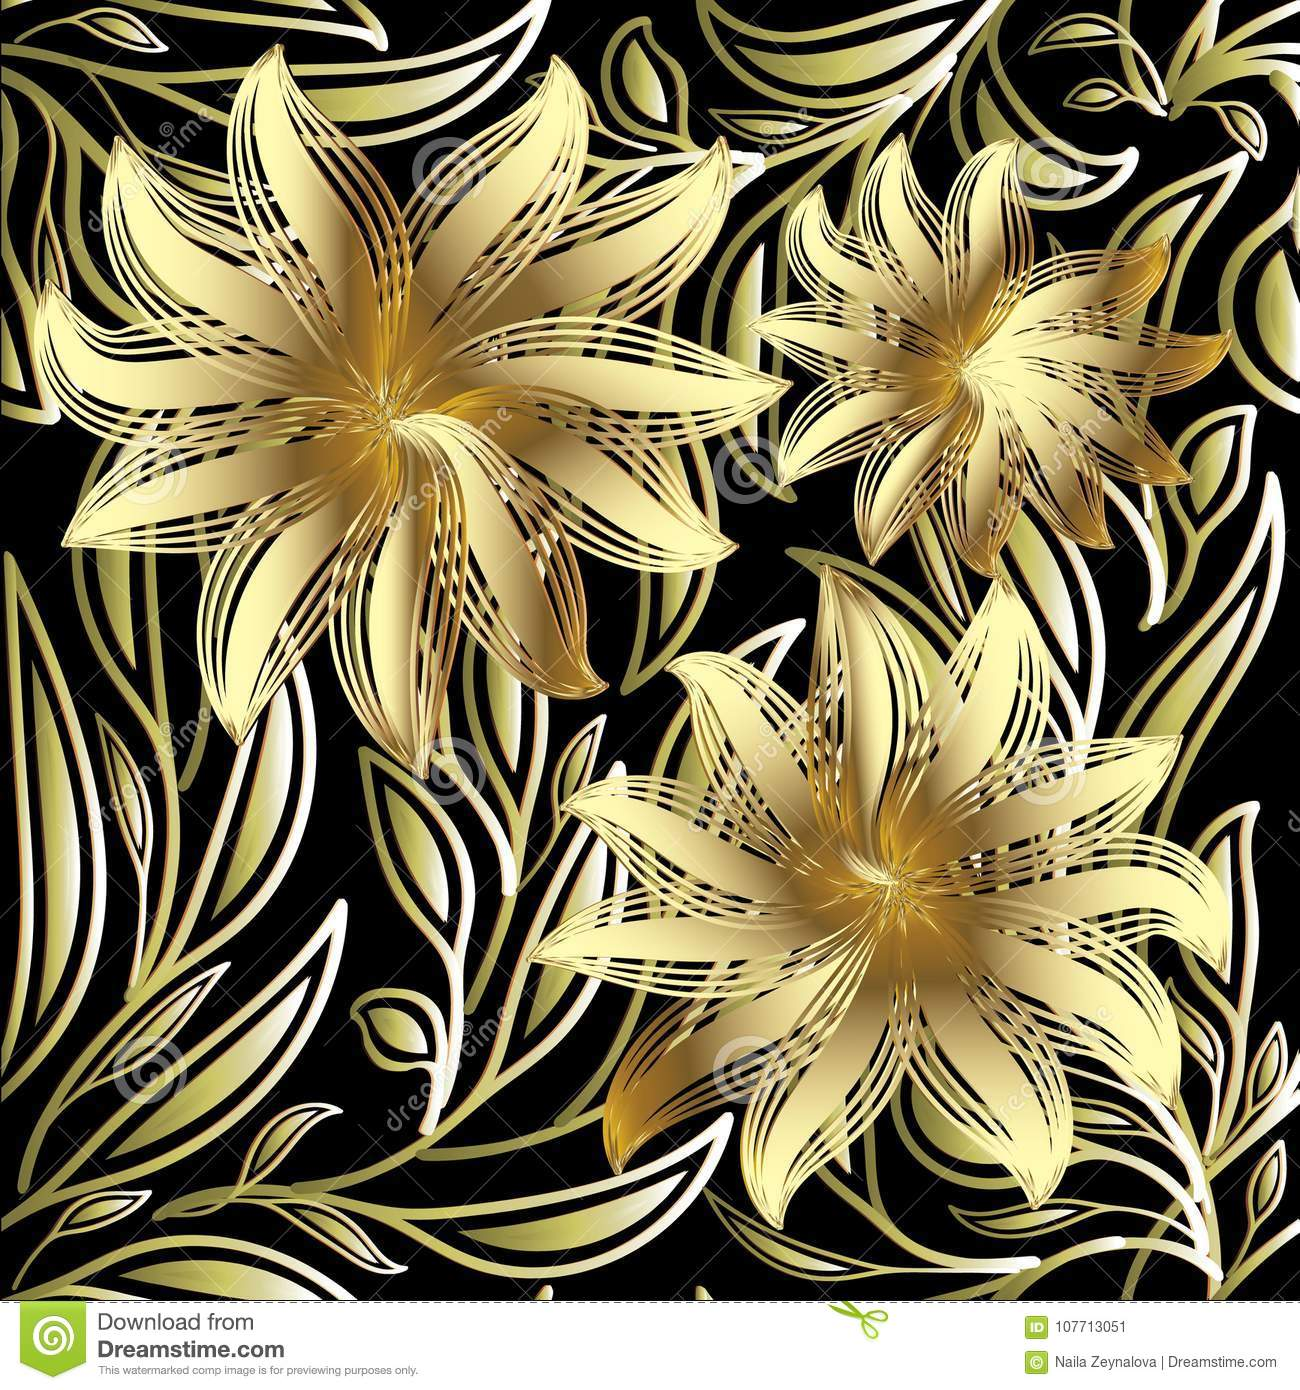 a9b4b5b57ff2 Gold 3d Flowers Seamless Pattern. Vector Black Floral Background ...